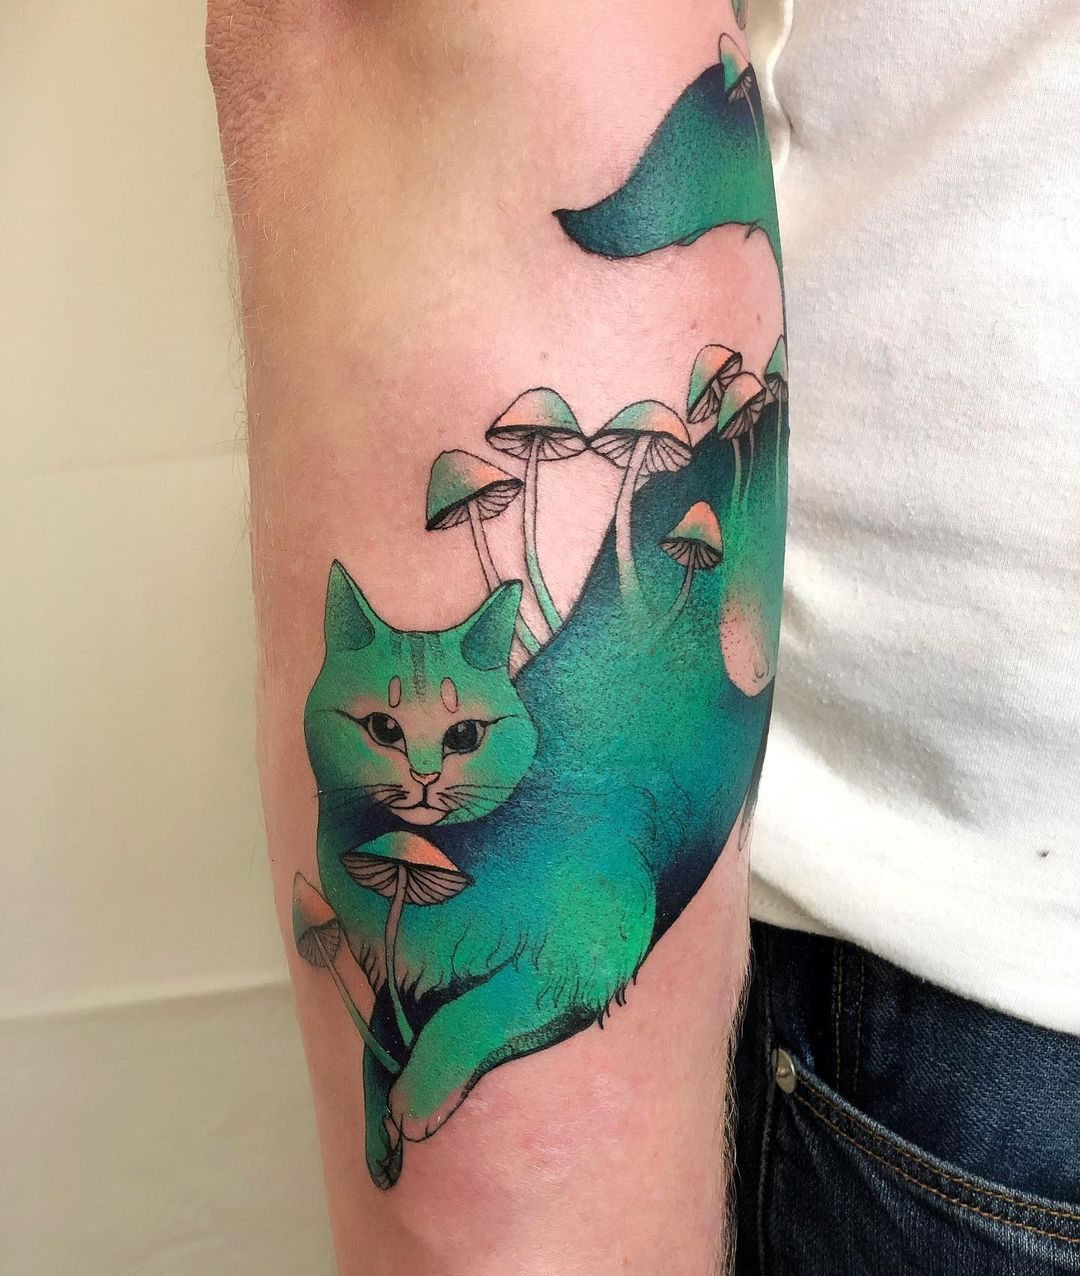 Nature-Inspired Tattoo Art by Dzo Lamka